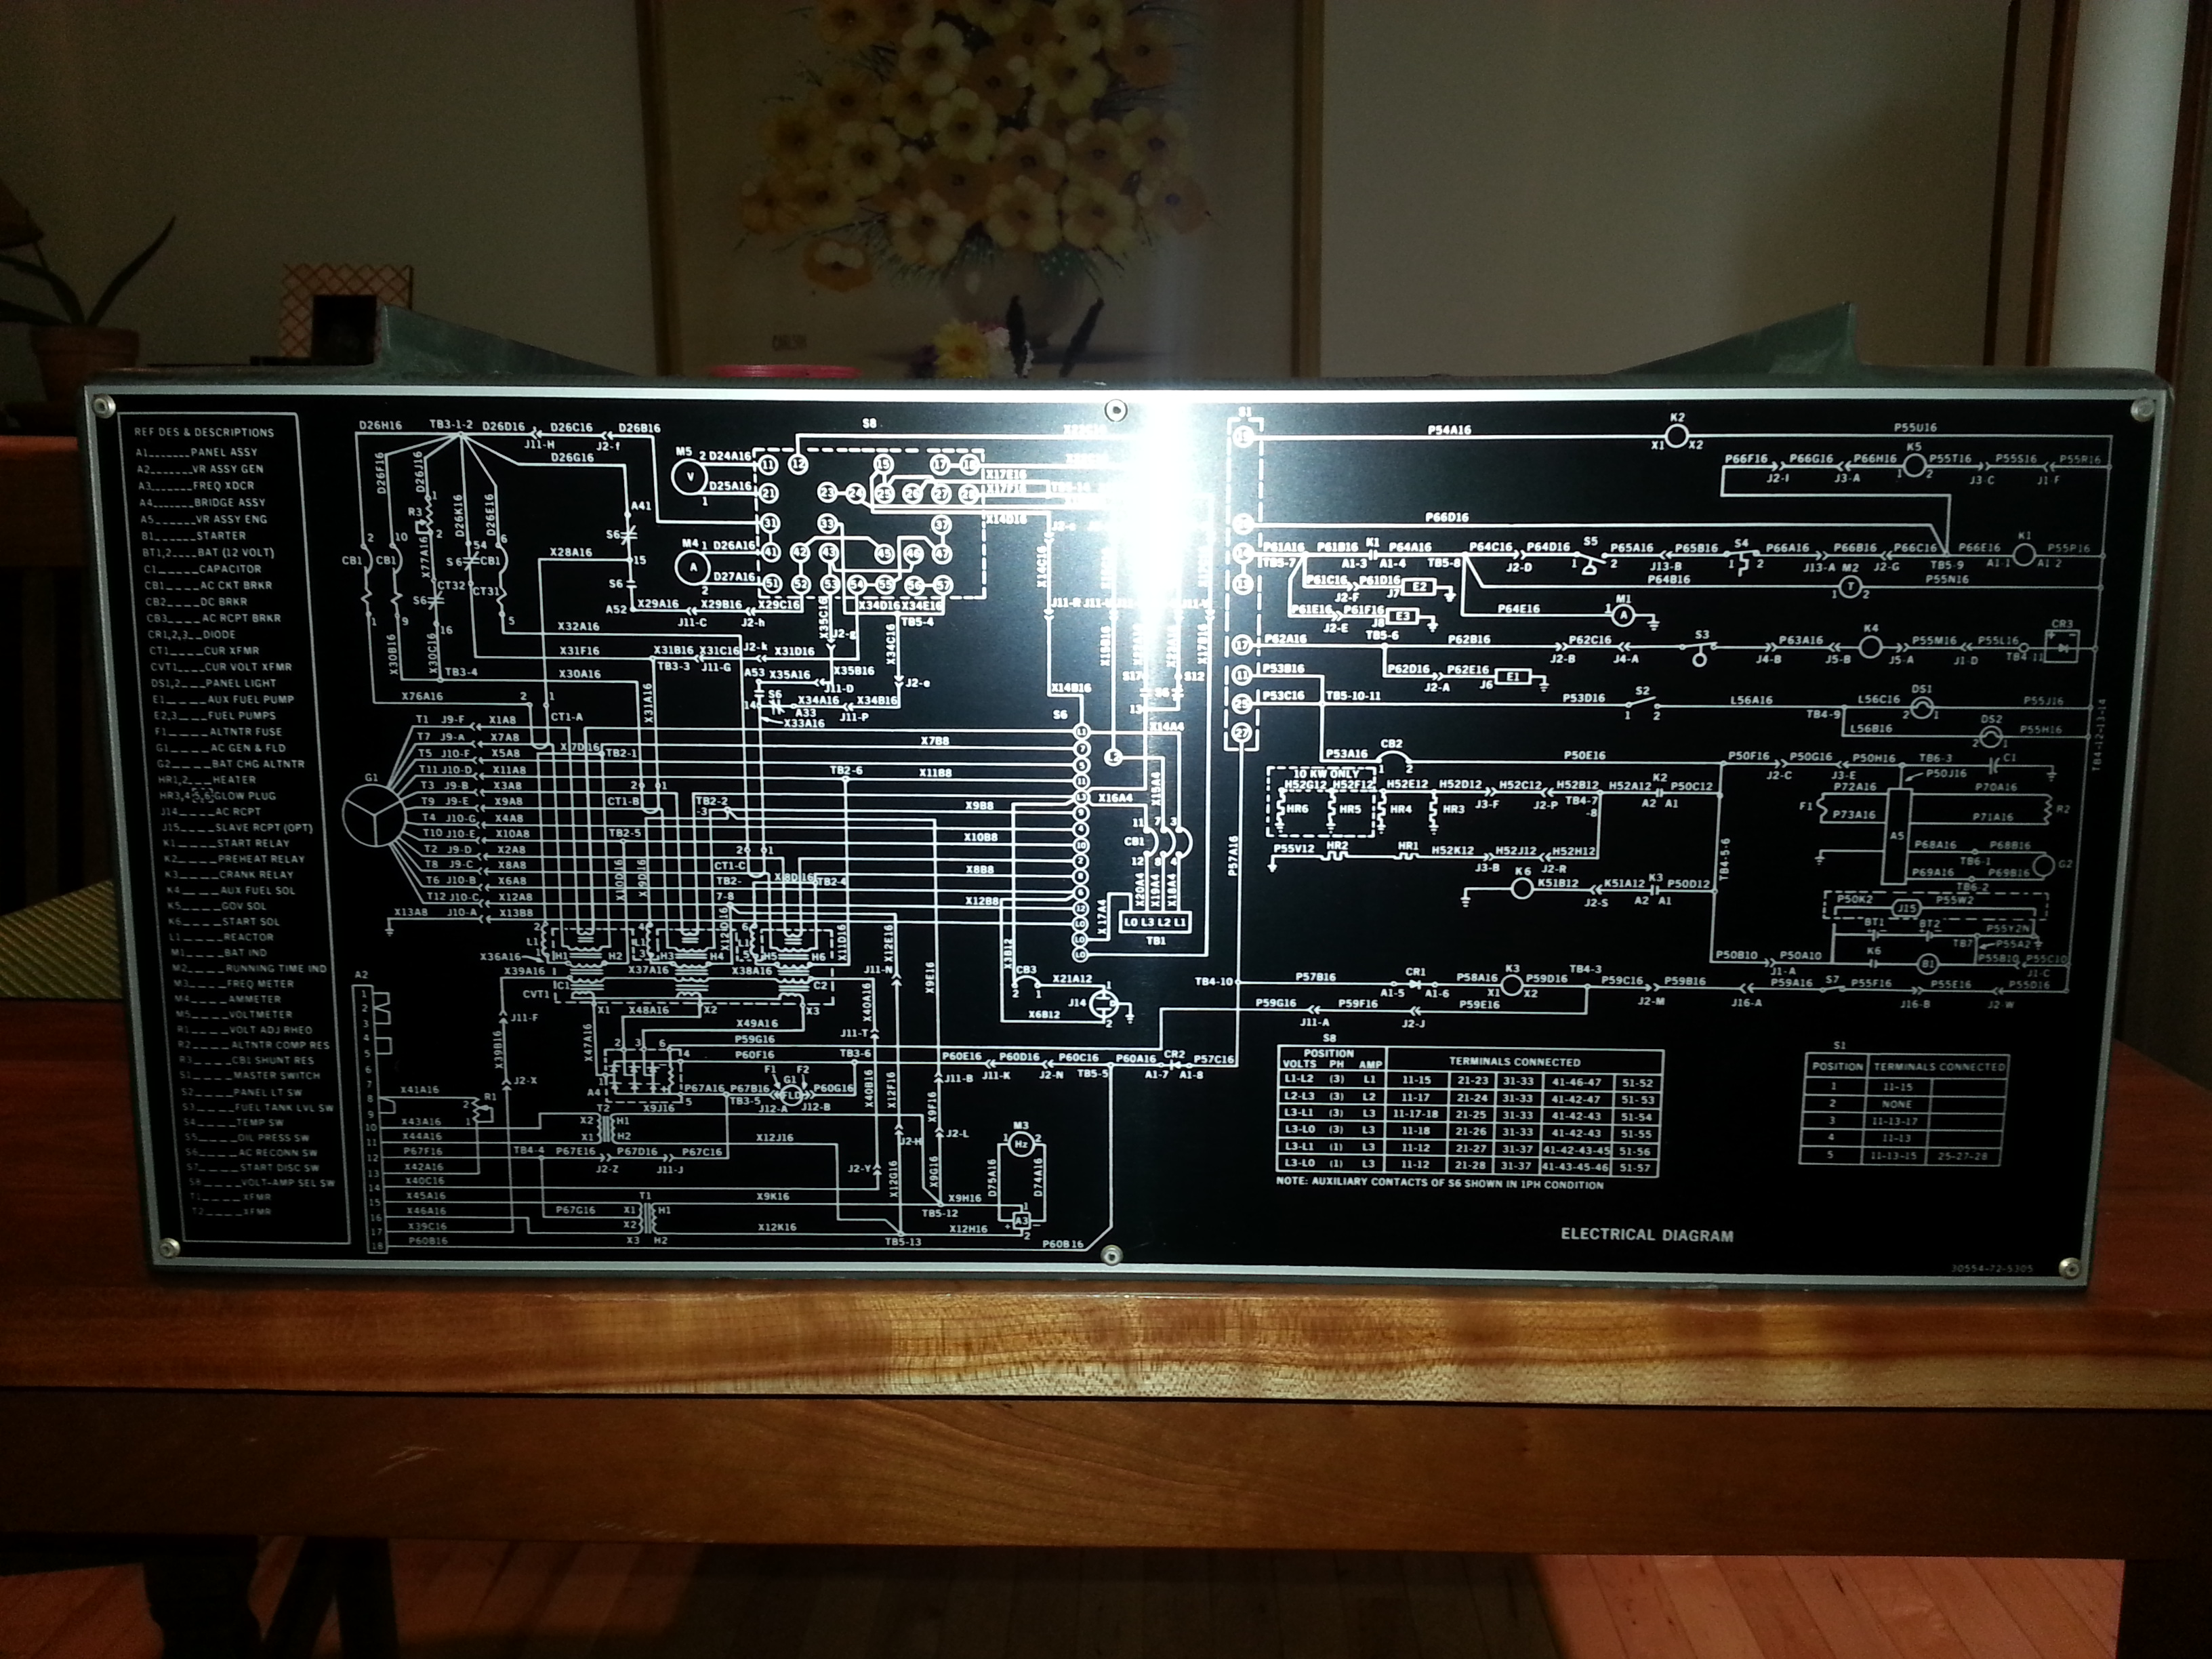 diesel generator control panel wiring diagram iphone 4 screw layout diagrams for mep002a and mep003a military